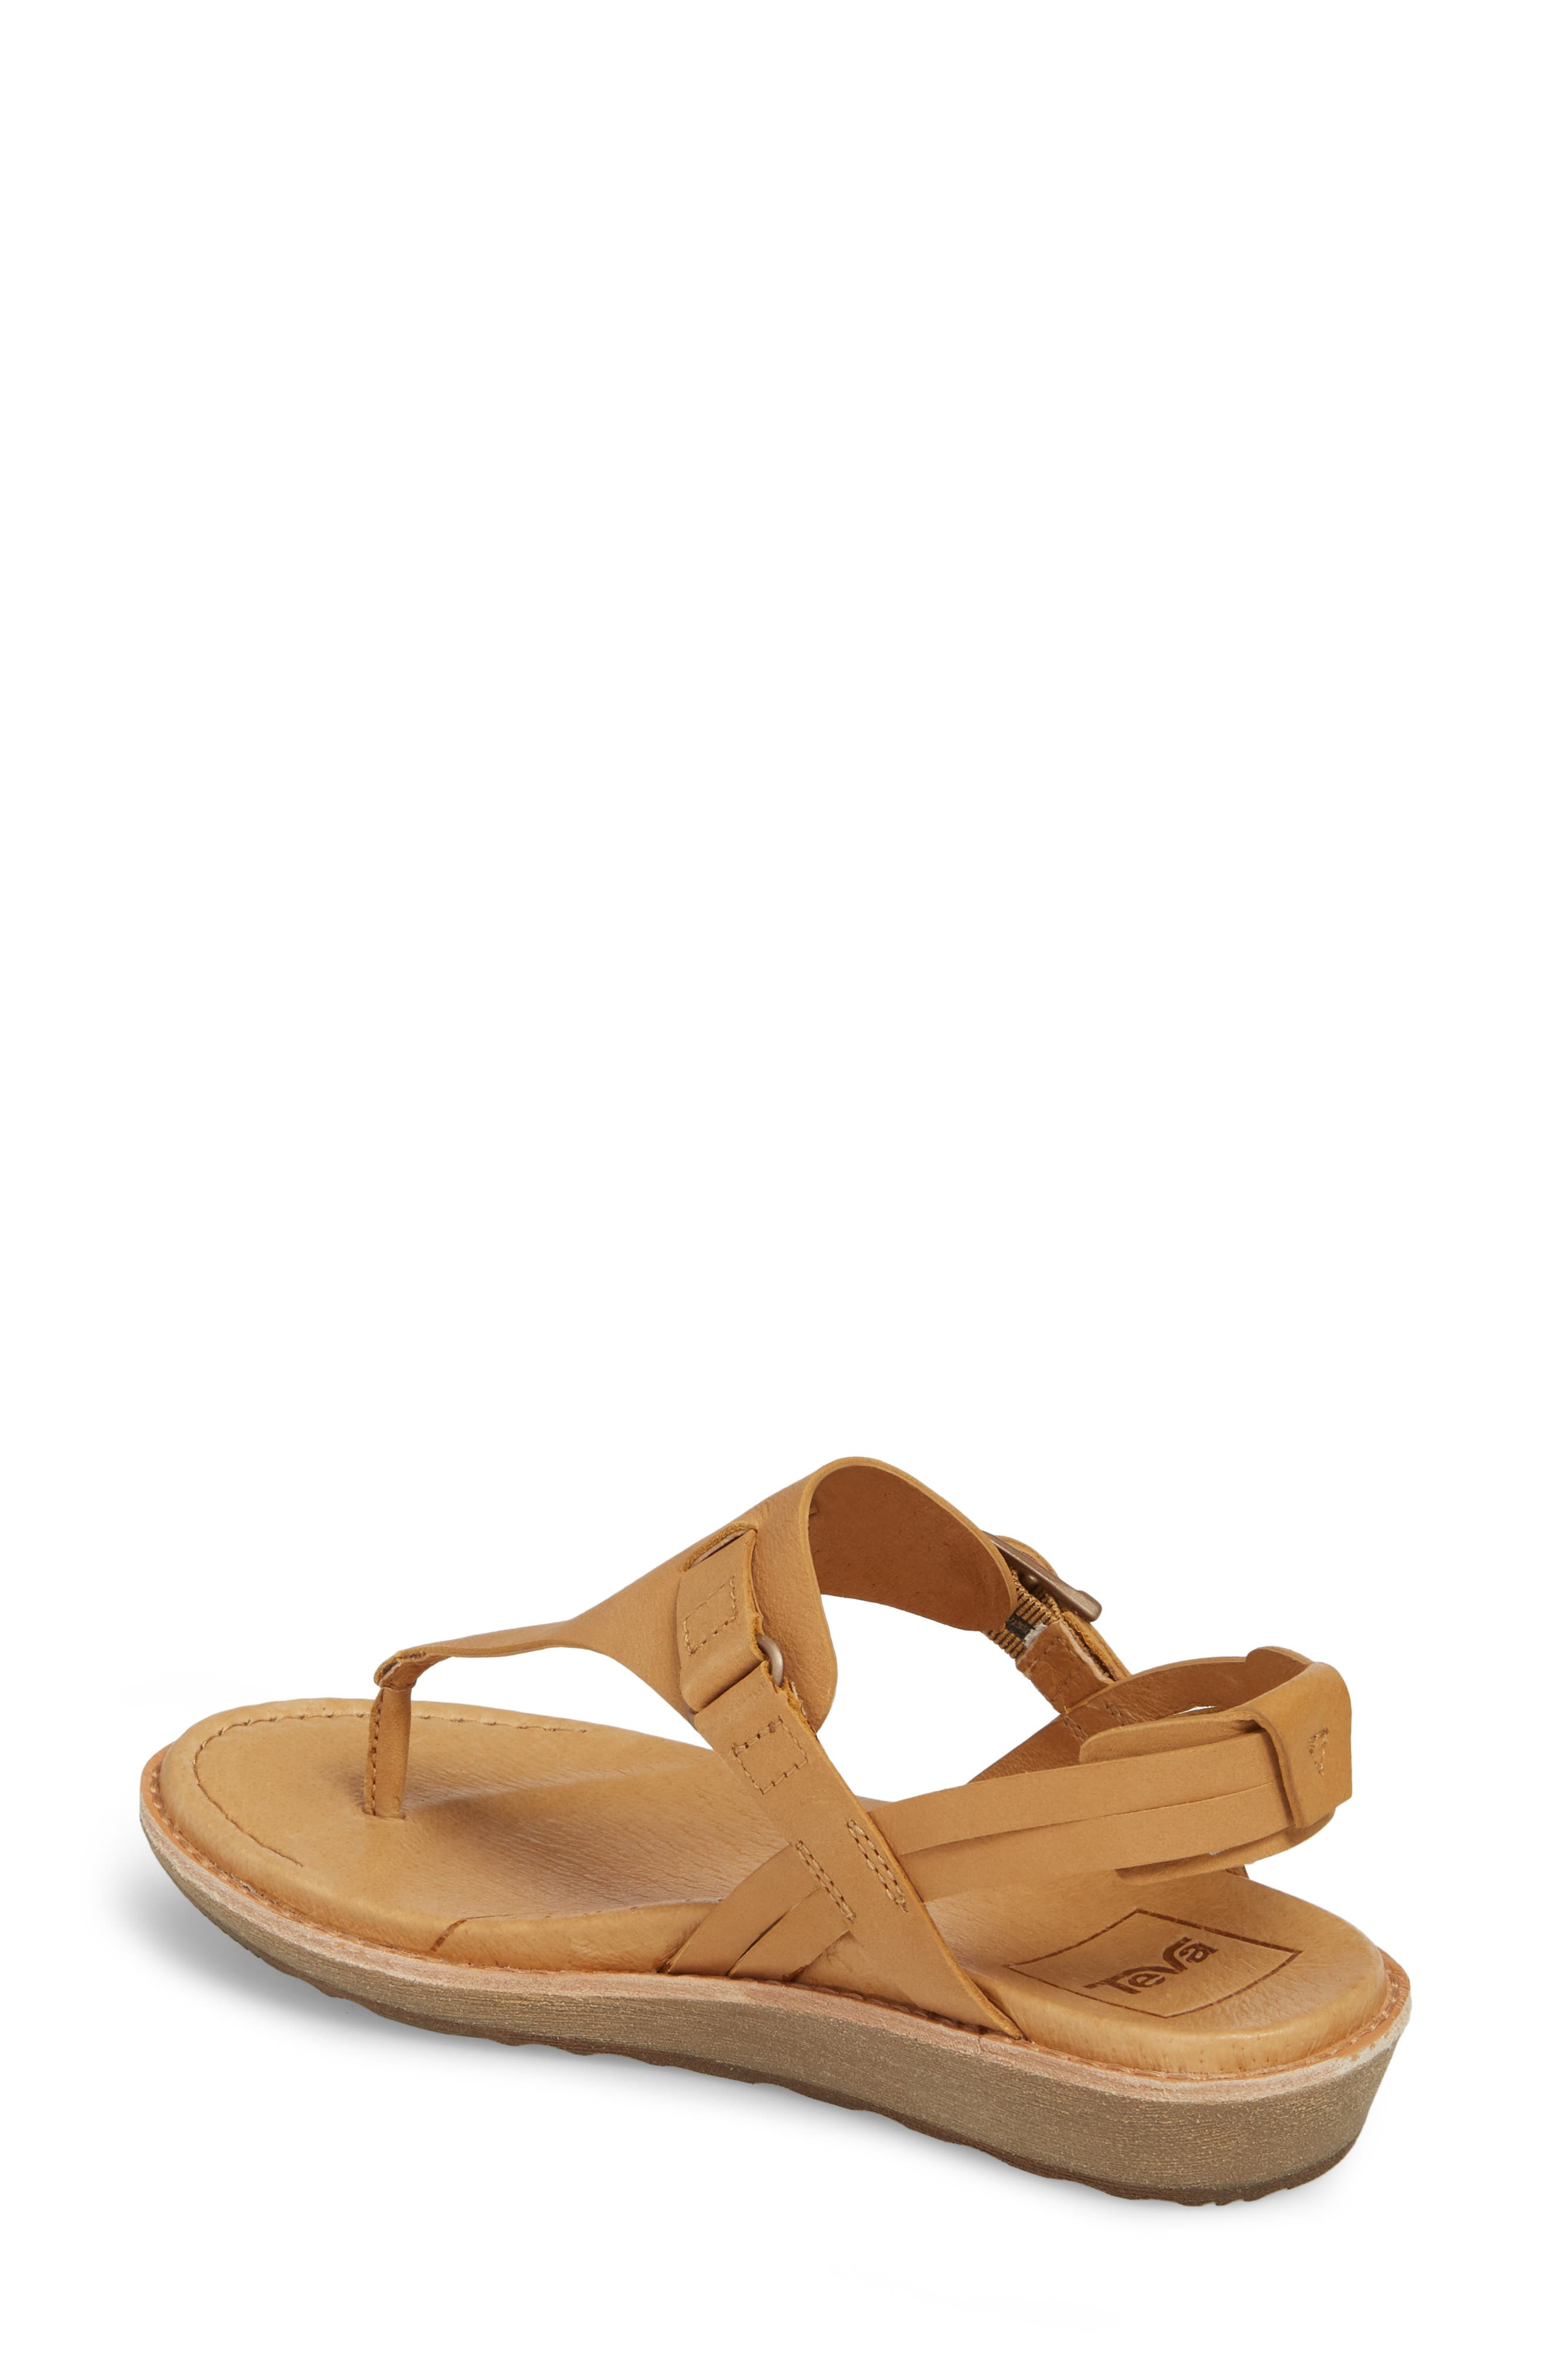 Encanta V-Strap Sandal,                             Alternate thumbnail 2, color,                             TAN